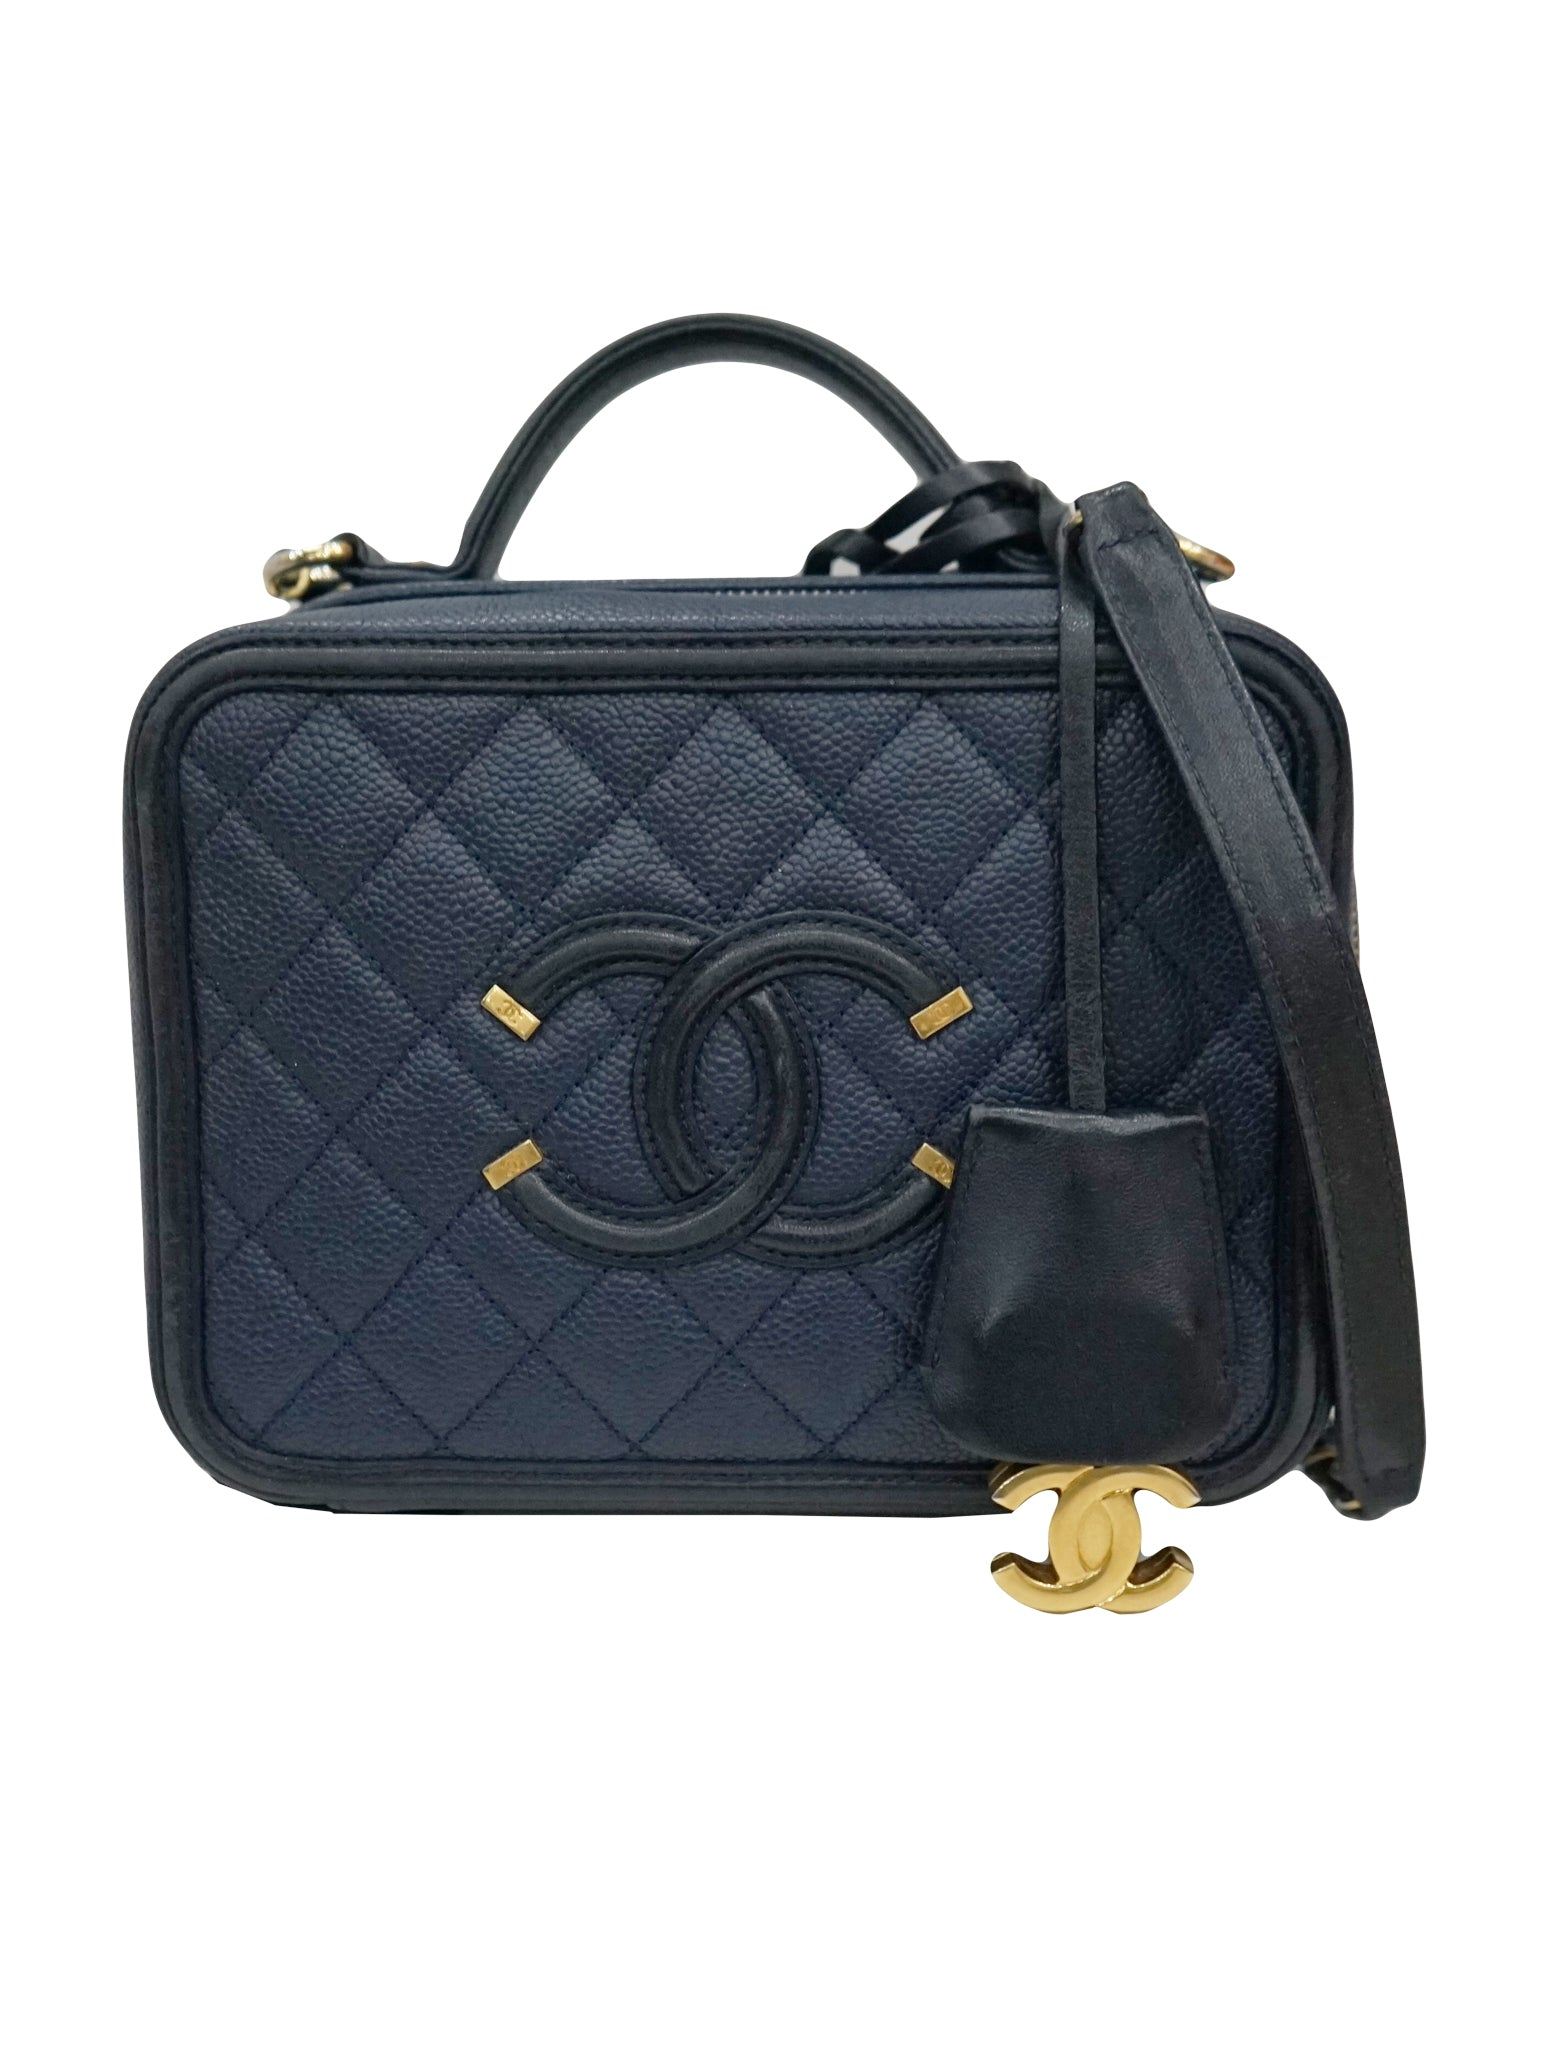 1a194caa645e Home / Bags for Mumz / CHANEL CAVIAR QUILTED CC FILIGREE VANITY CASE.  CAVIAR QUILTED CC FILIGREE VANITY CASE